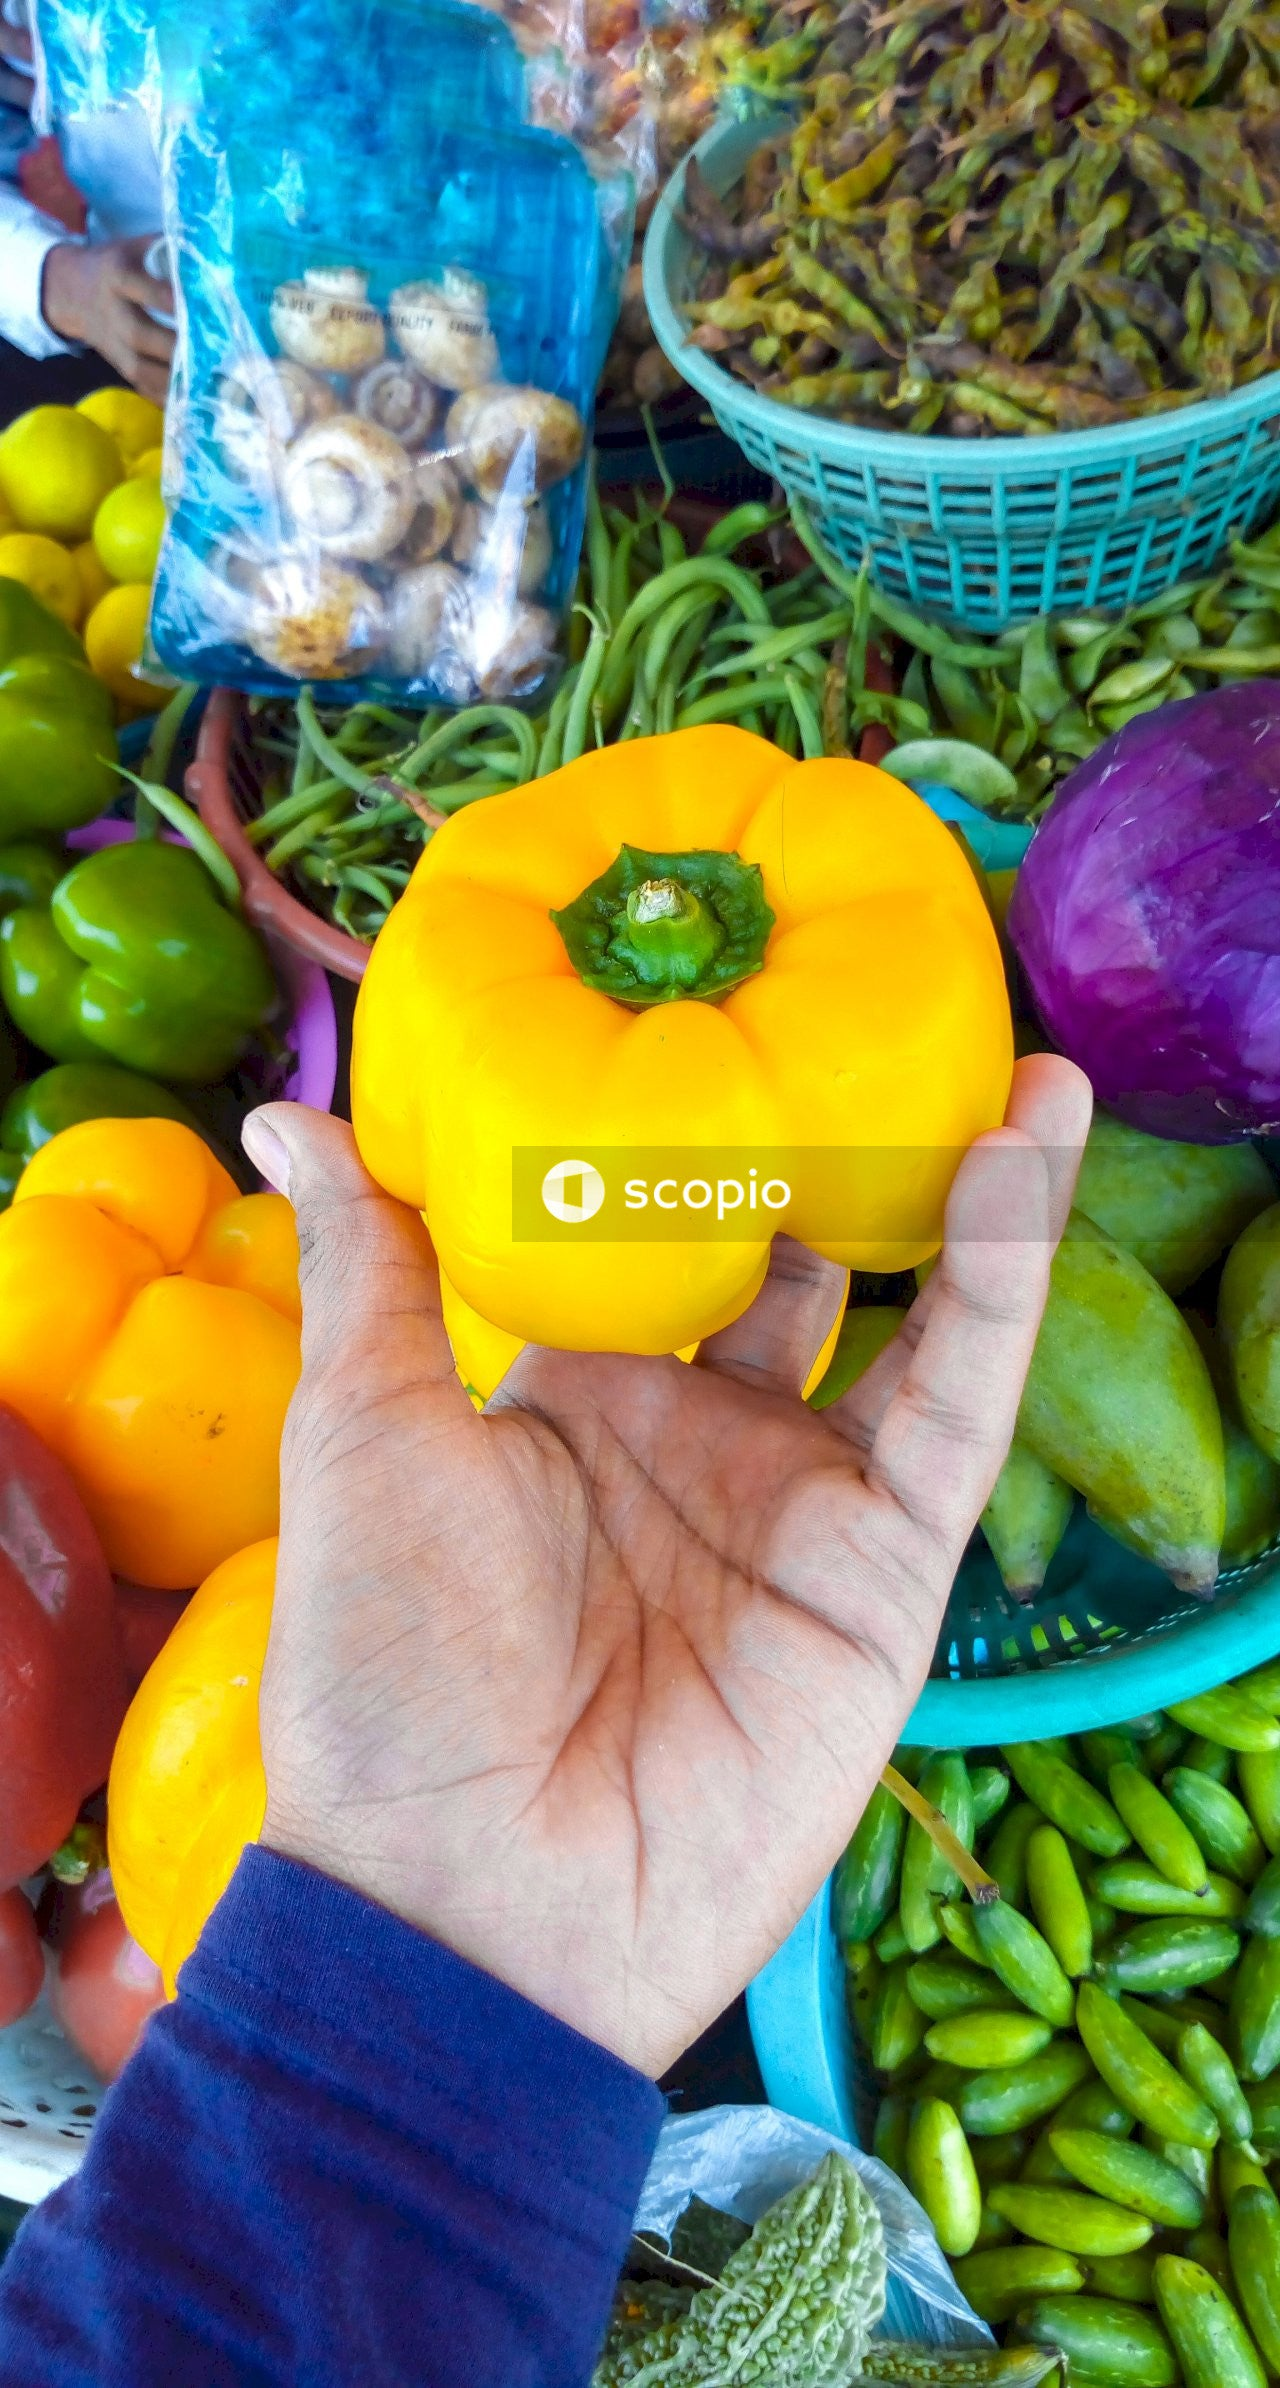 Yellow bell pepper on persons hand